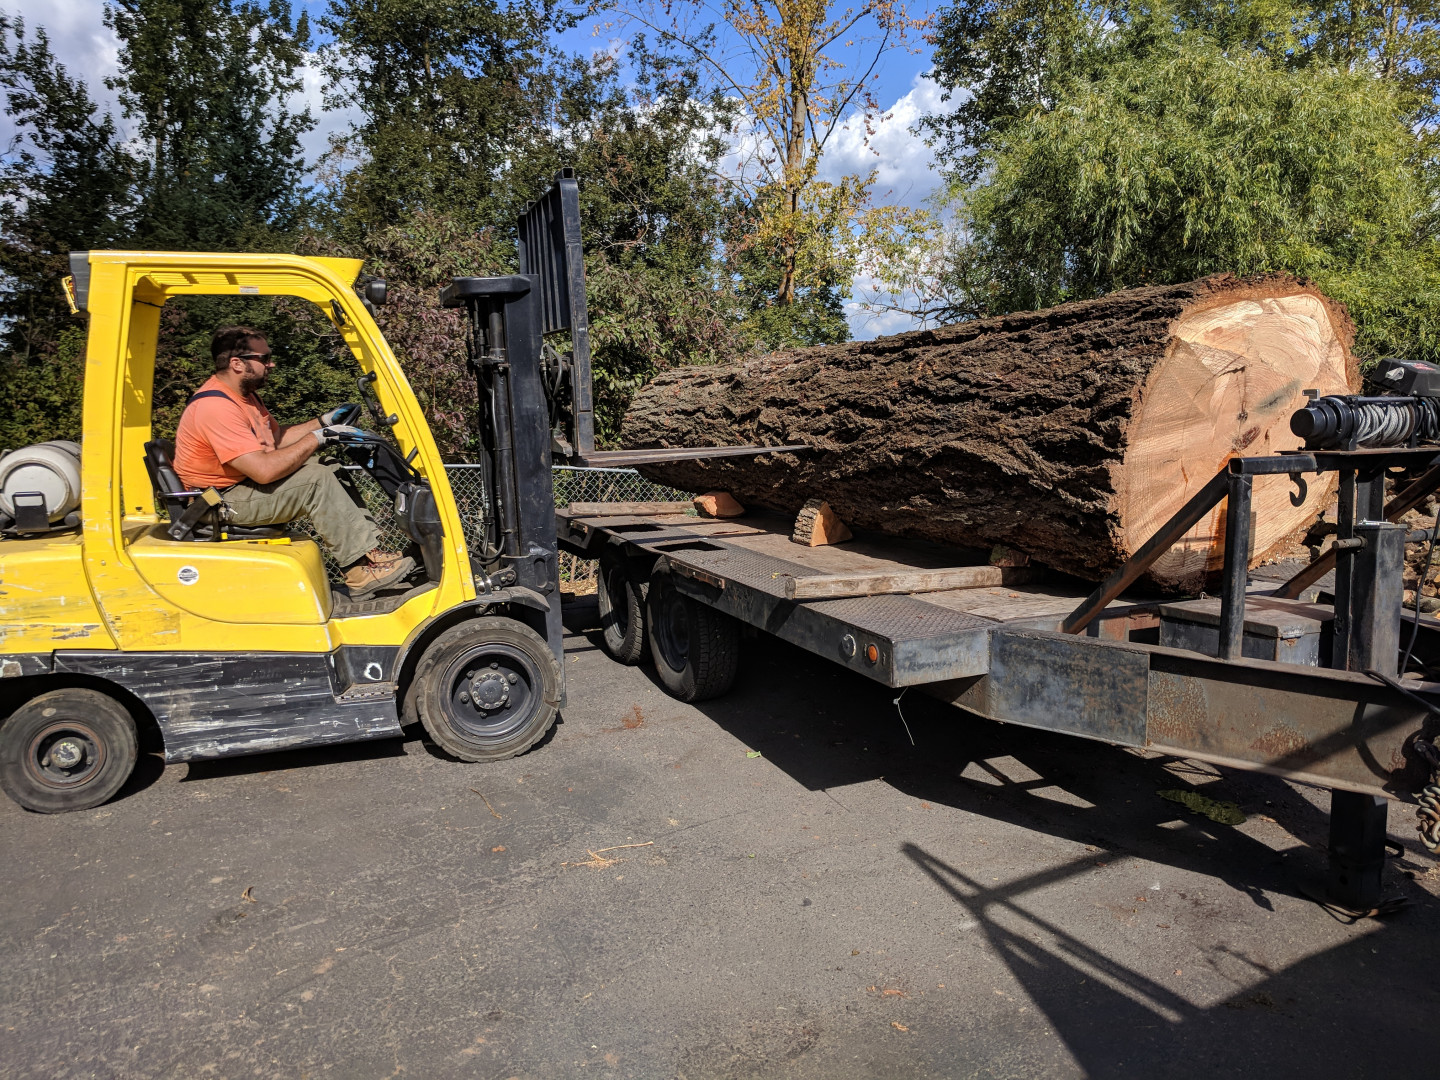 Log salvaging benefits the environment